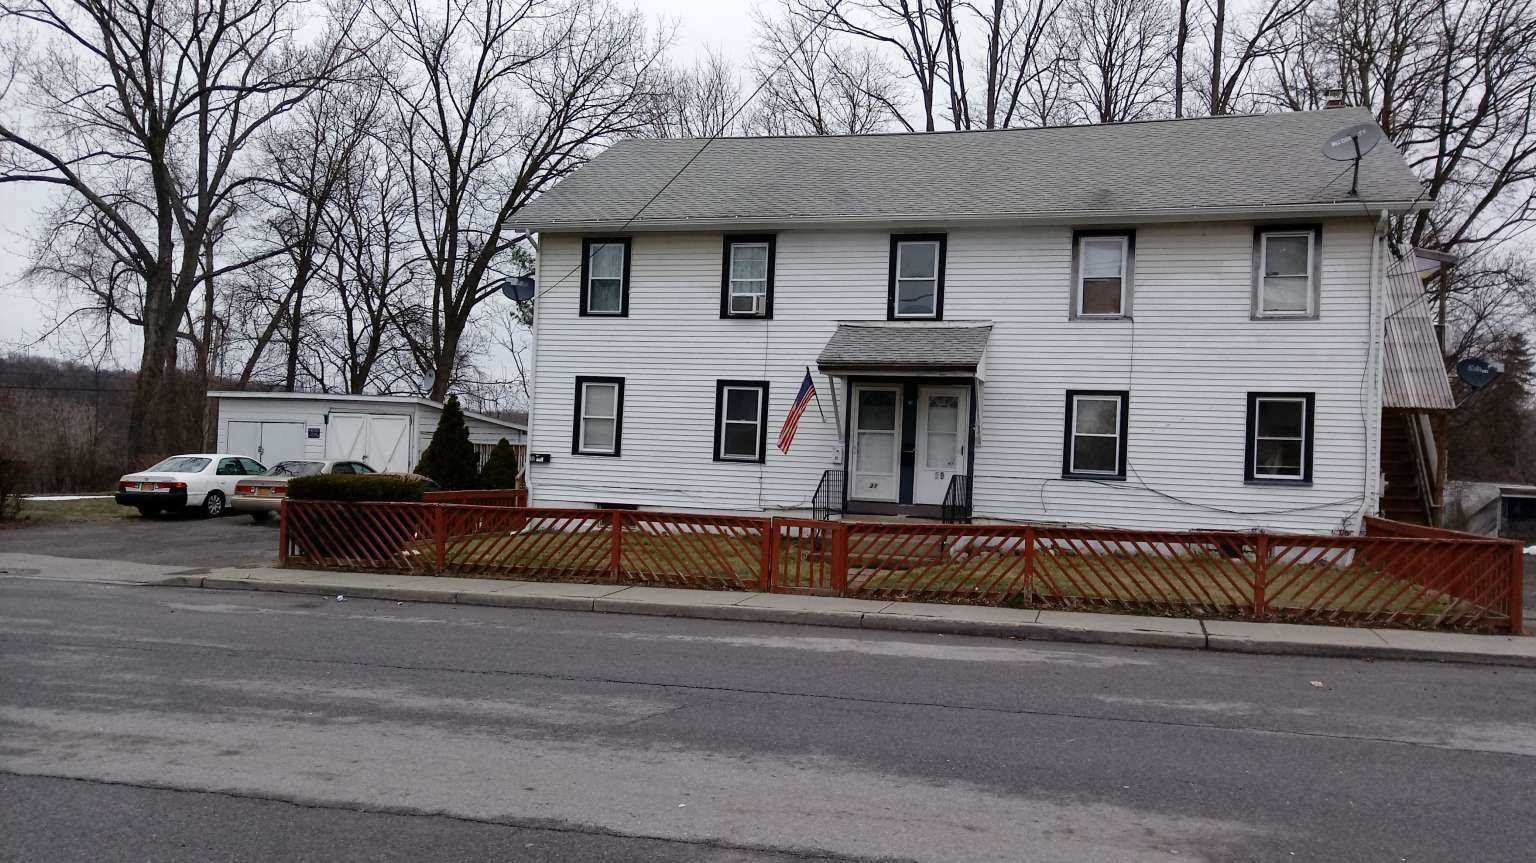 2931 FRANKLINDALE AVE, Wappingers Falls, NY 12590 - #: 403184